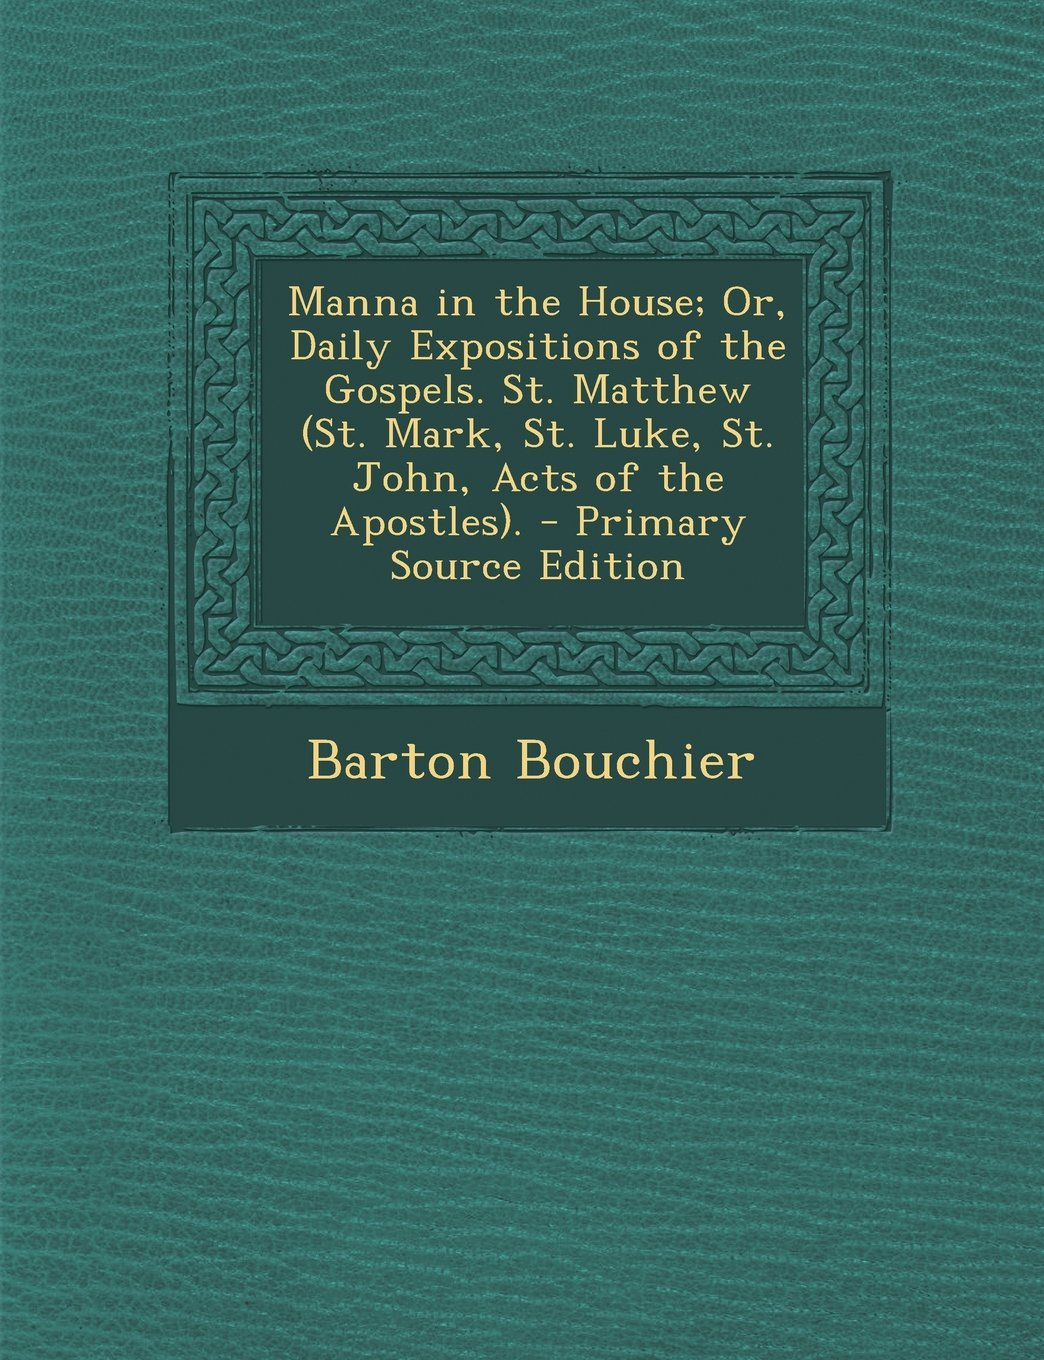 Manna in the House; Or, Daily Expositions of the Gospels. St. Matthew (St. Mark, St. Luke, St. John, Acts of the Apostles). - Primary Source Edition PDF